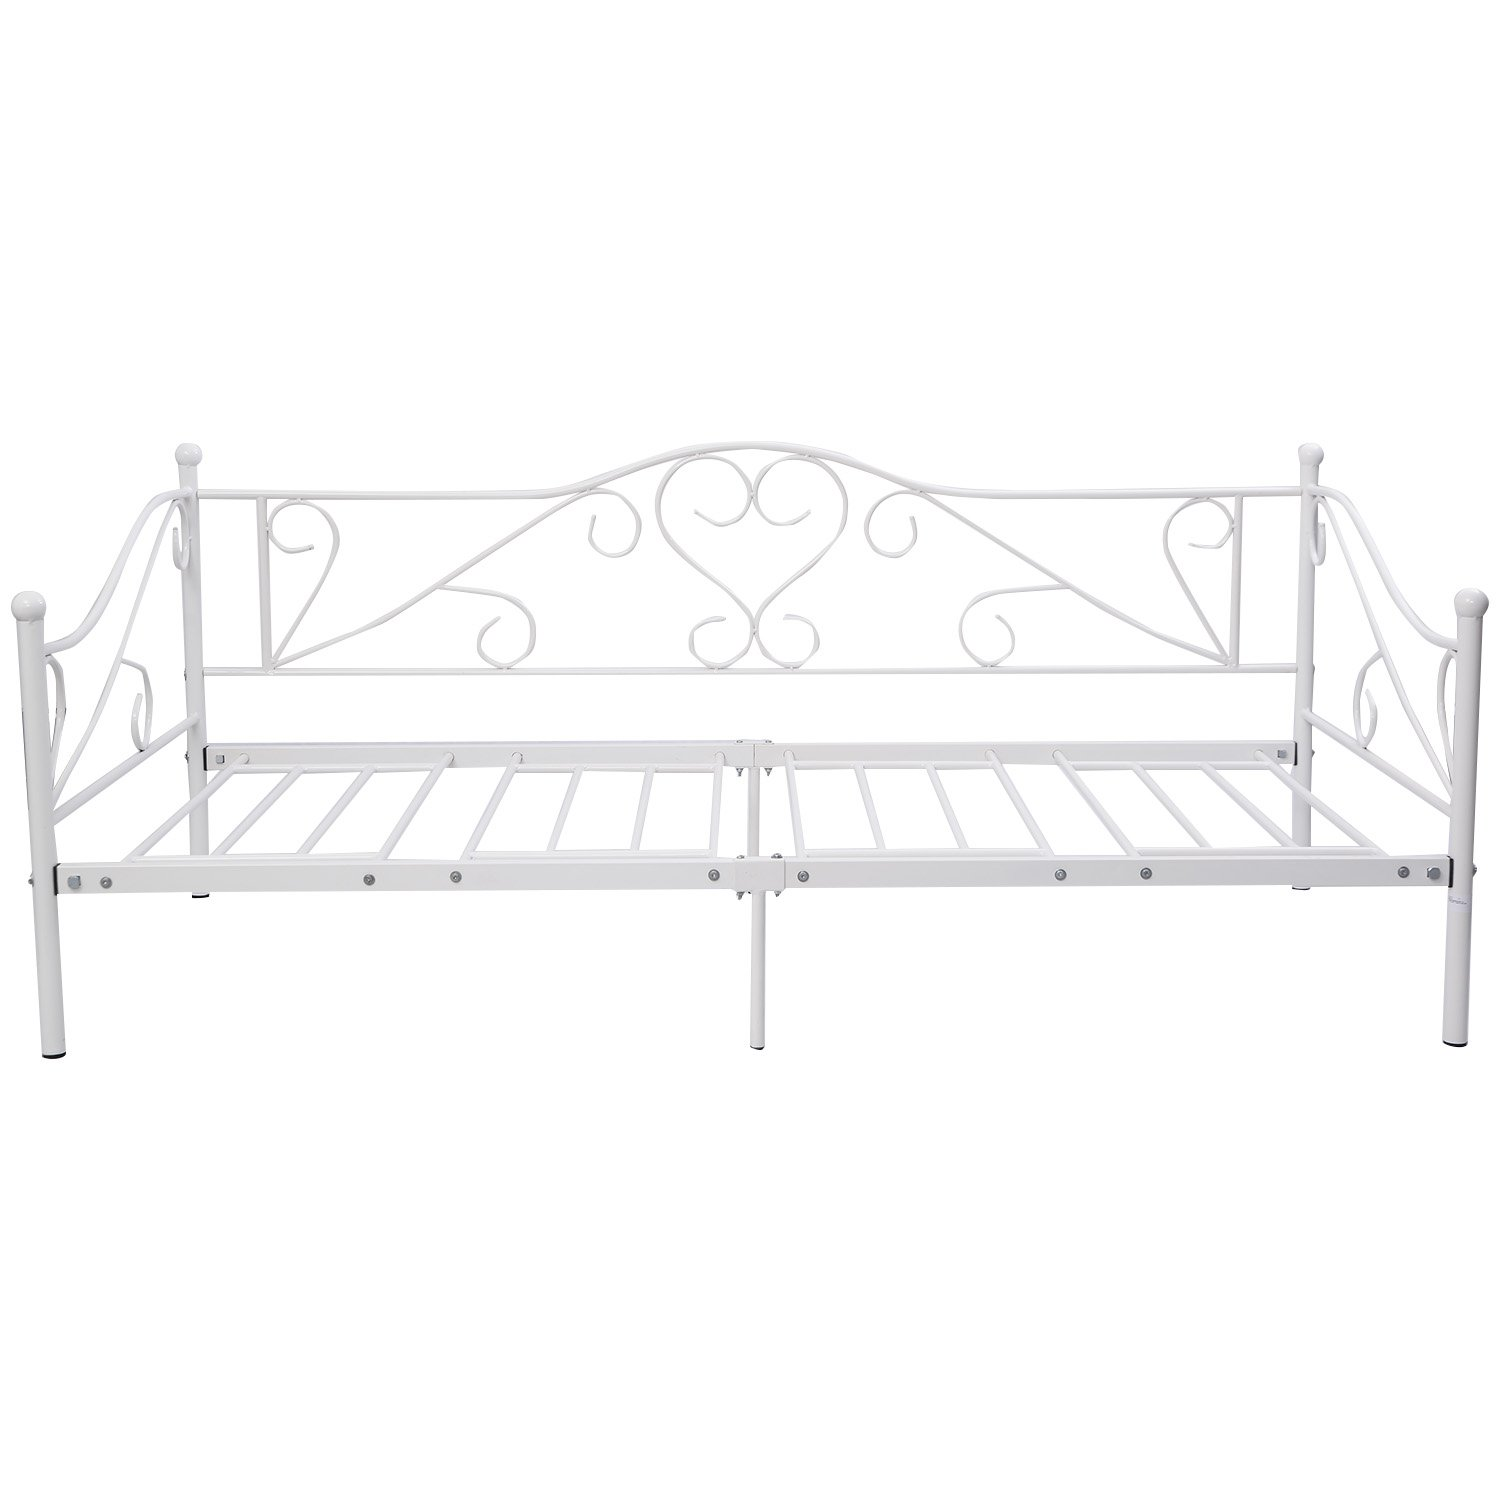 Metallbett 90x200 weiß  Metallbetten | Amazon.de